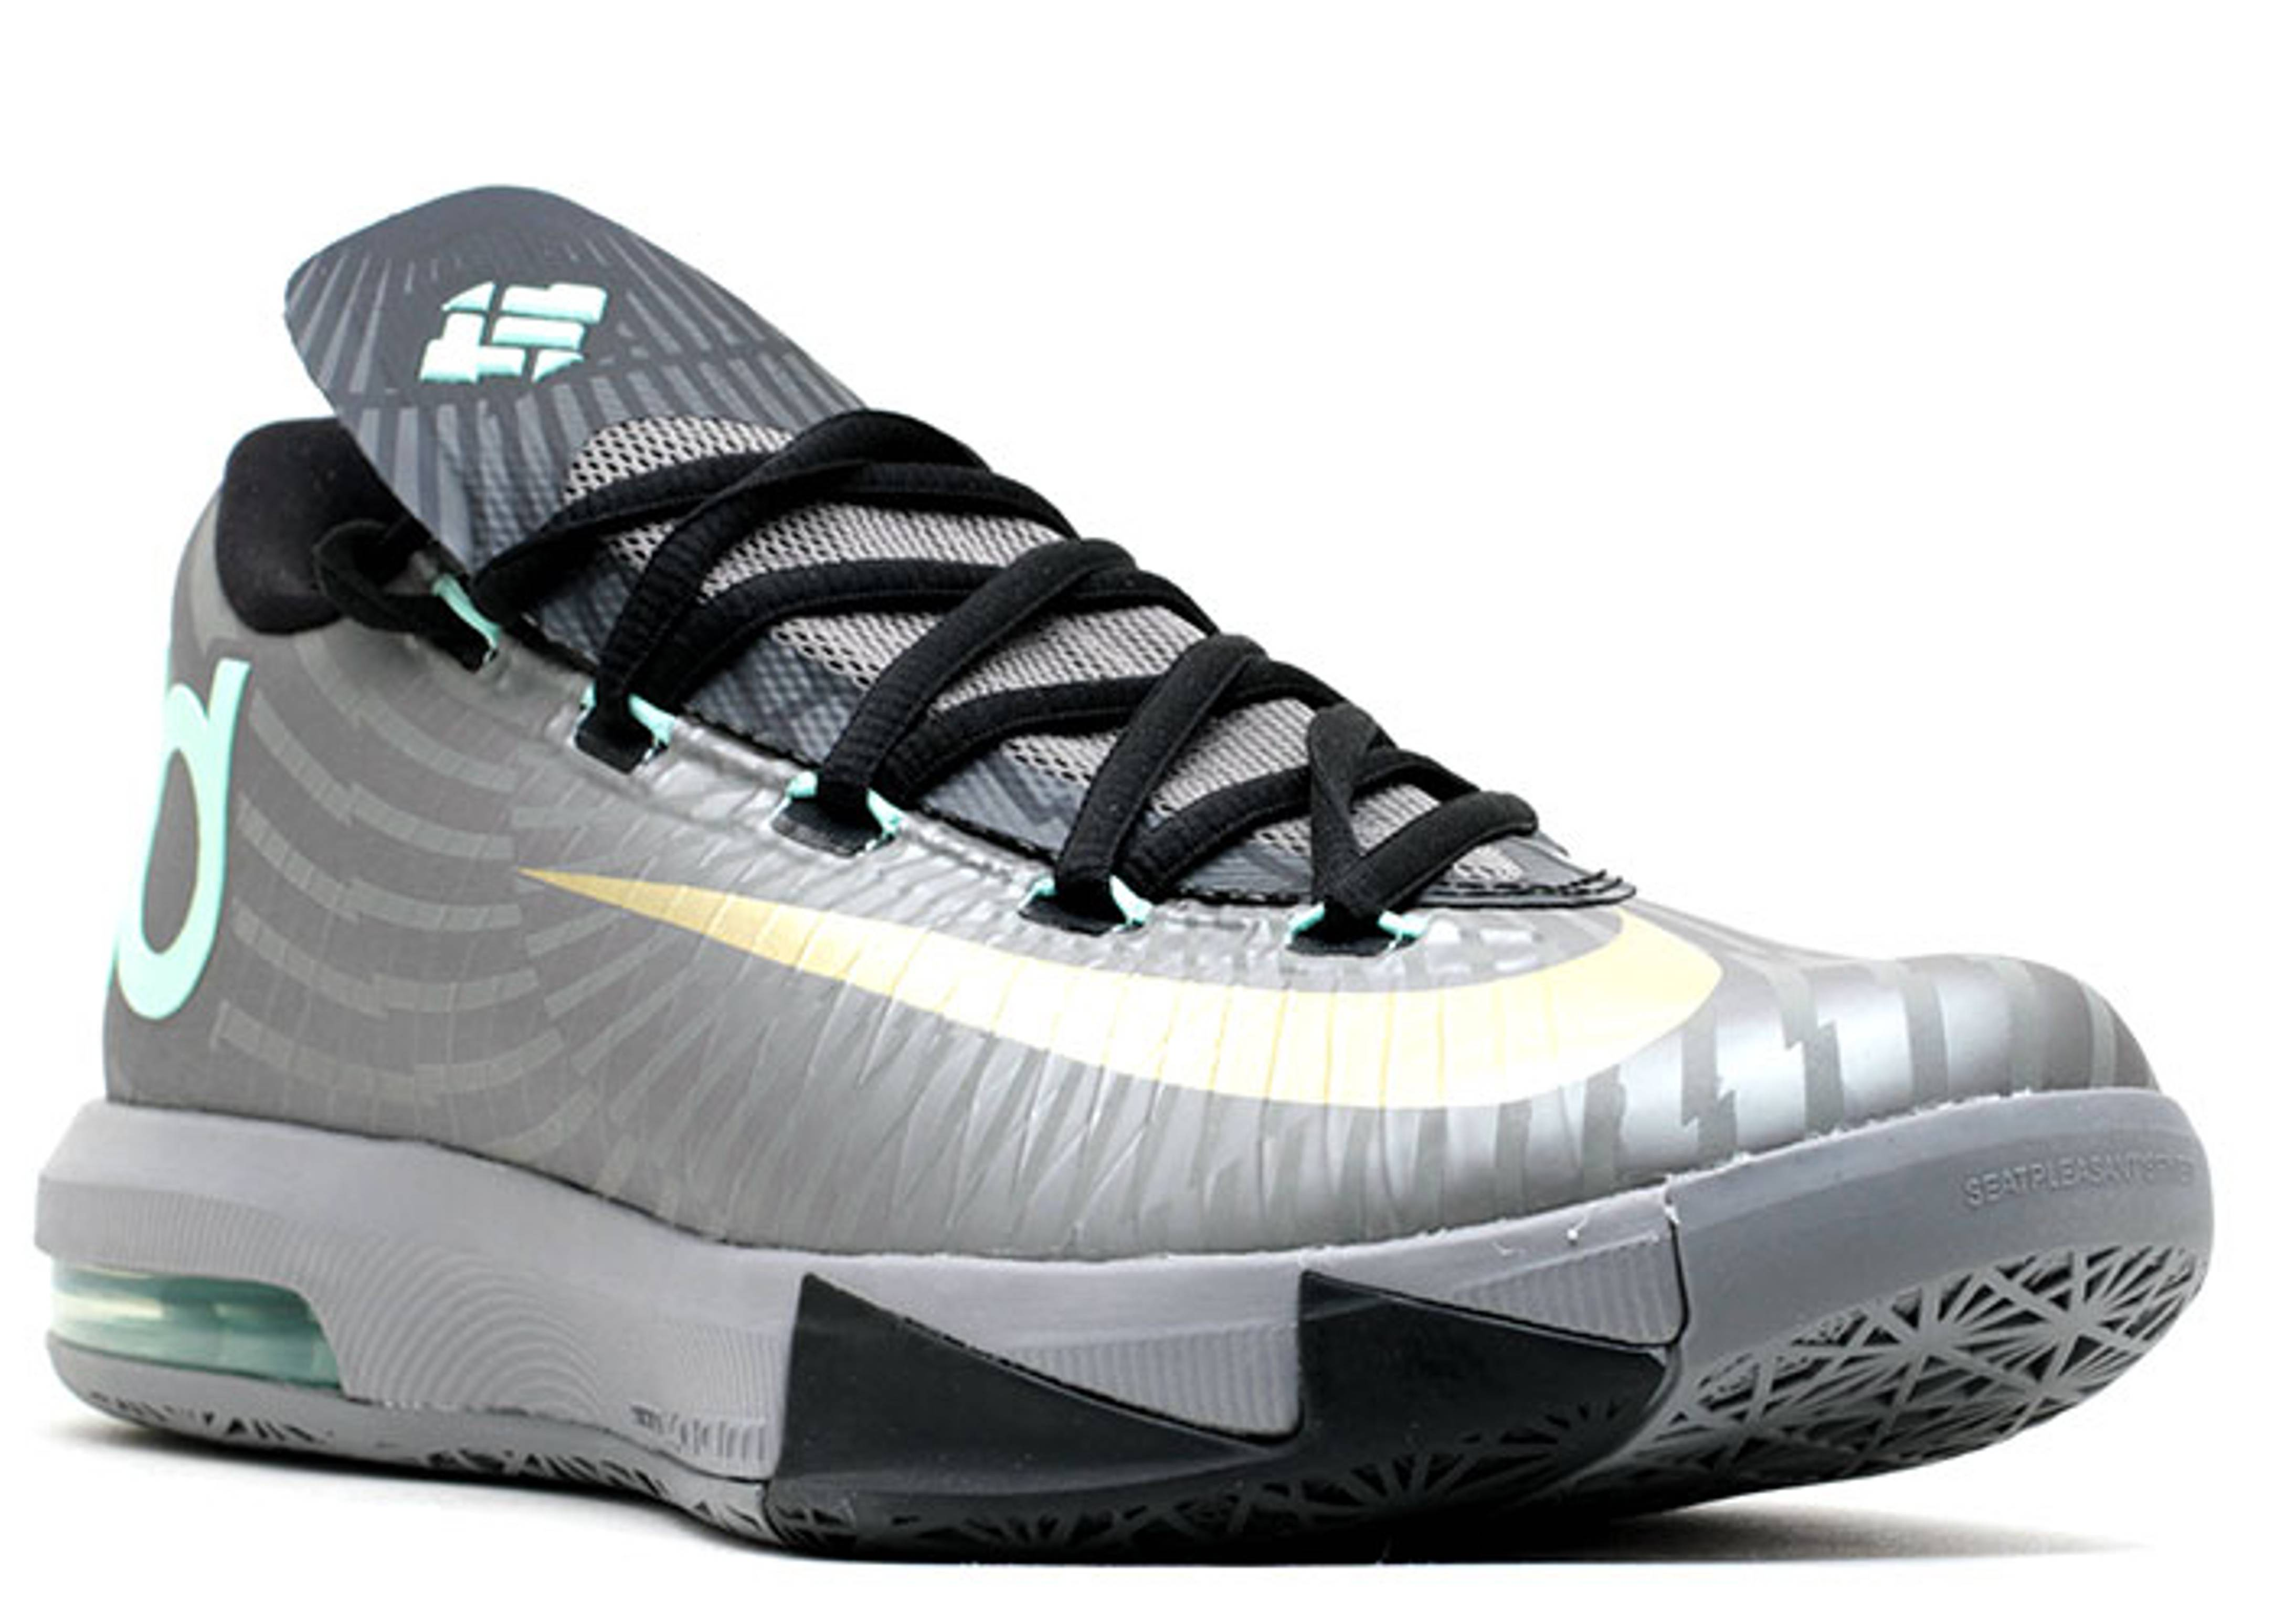 kd 6 quotprecision timingquot nike 599424 003 mtlc pwtr